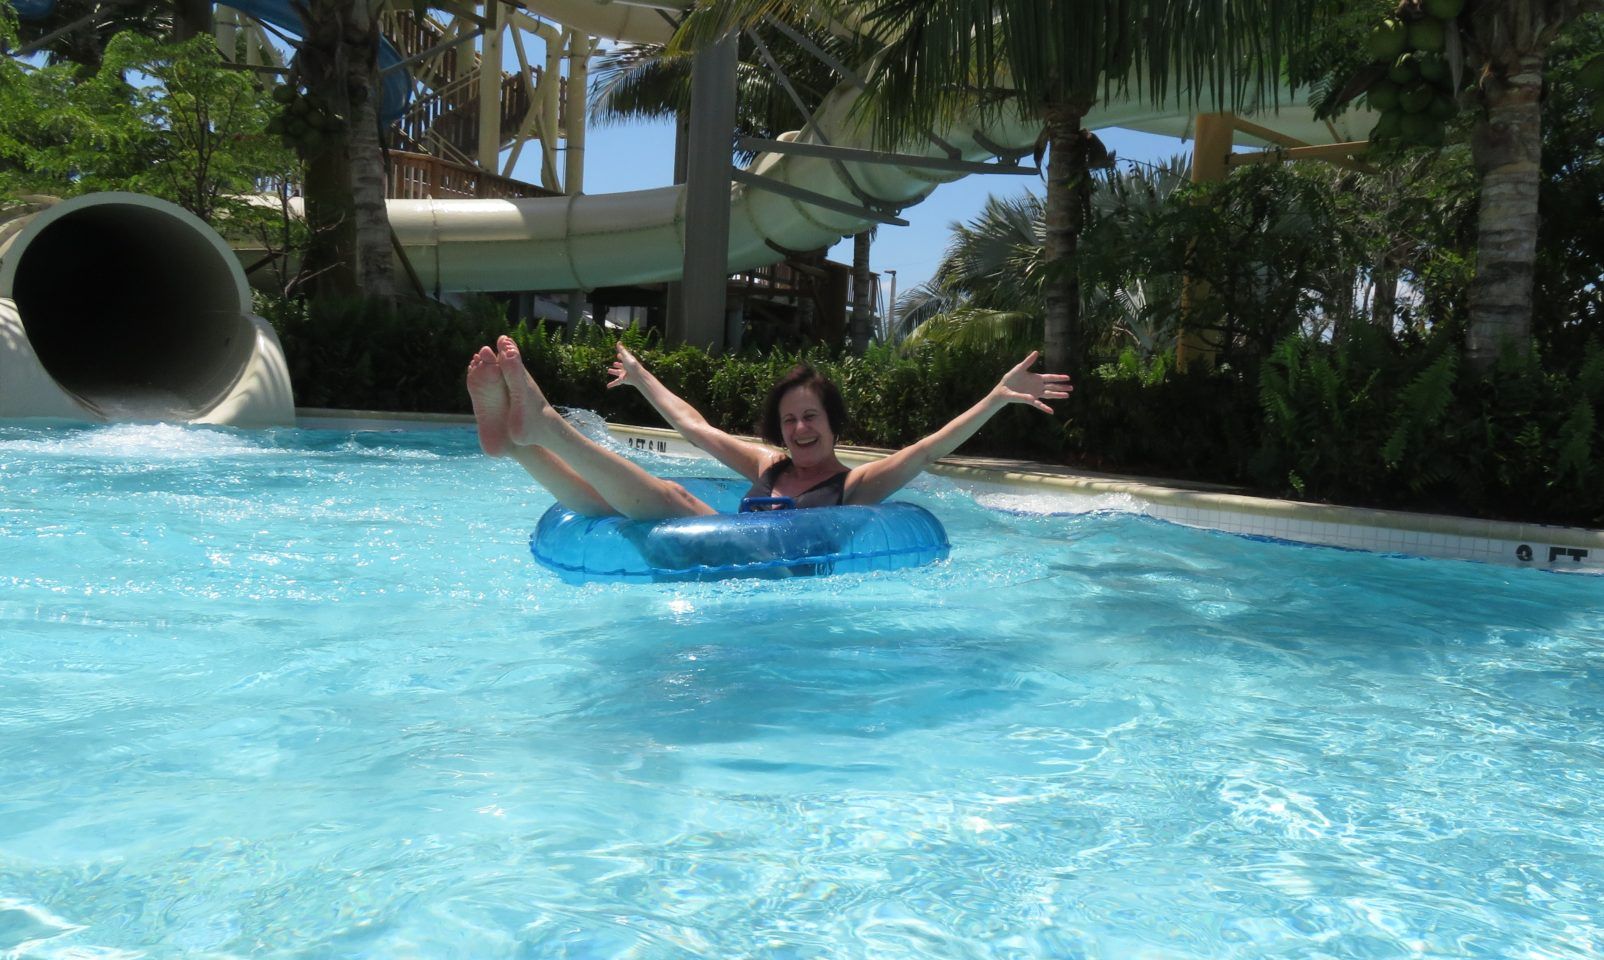 Down the 3-story waterslide into the Lazy River ~ Gem of a Florida Resort